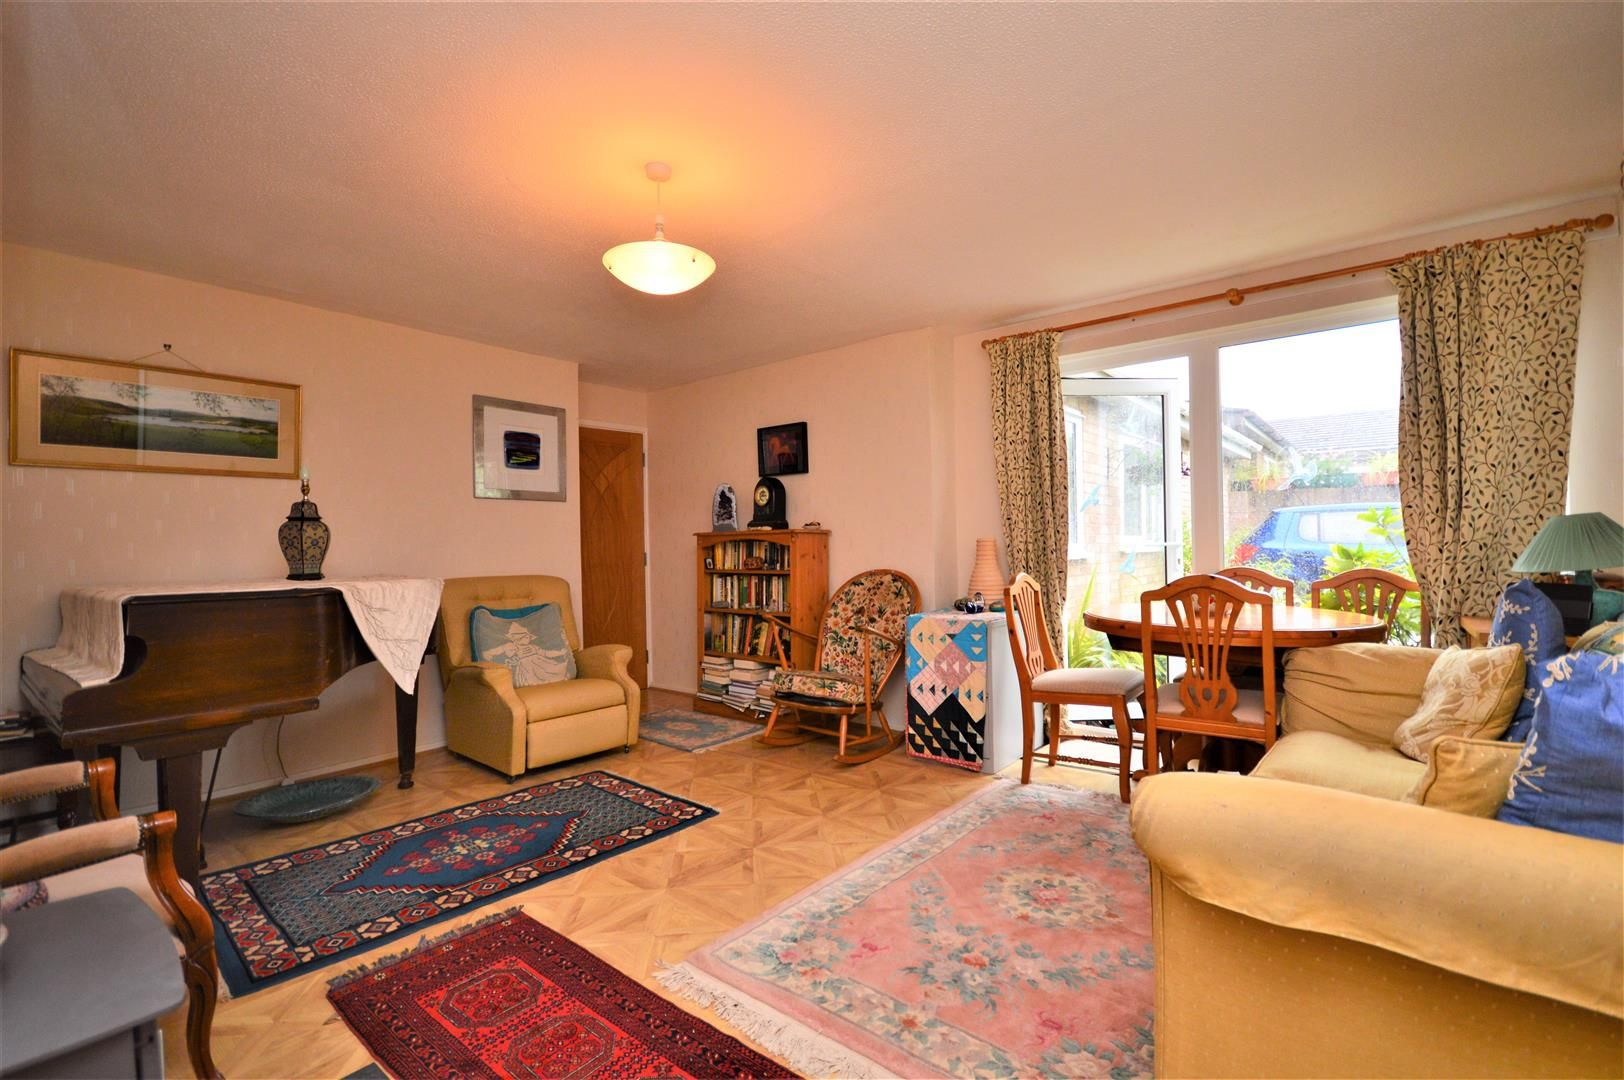 3 bed semi-detached bungalow for sale in Peterchurch  - Property Image 4